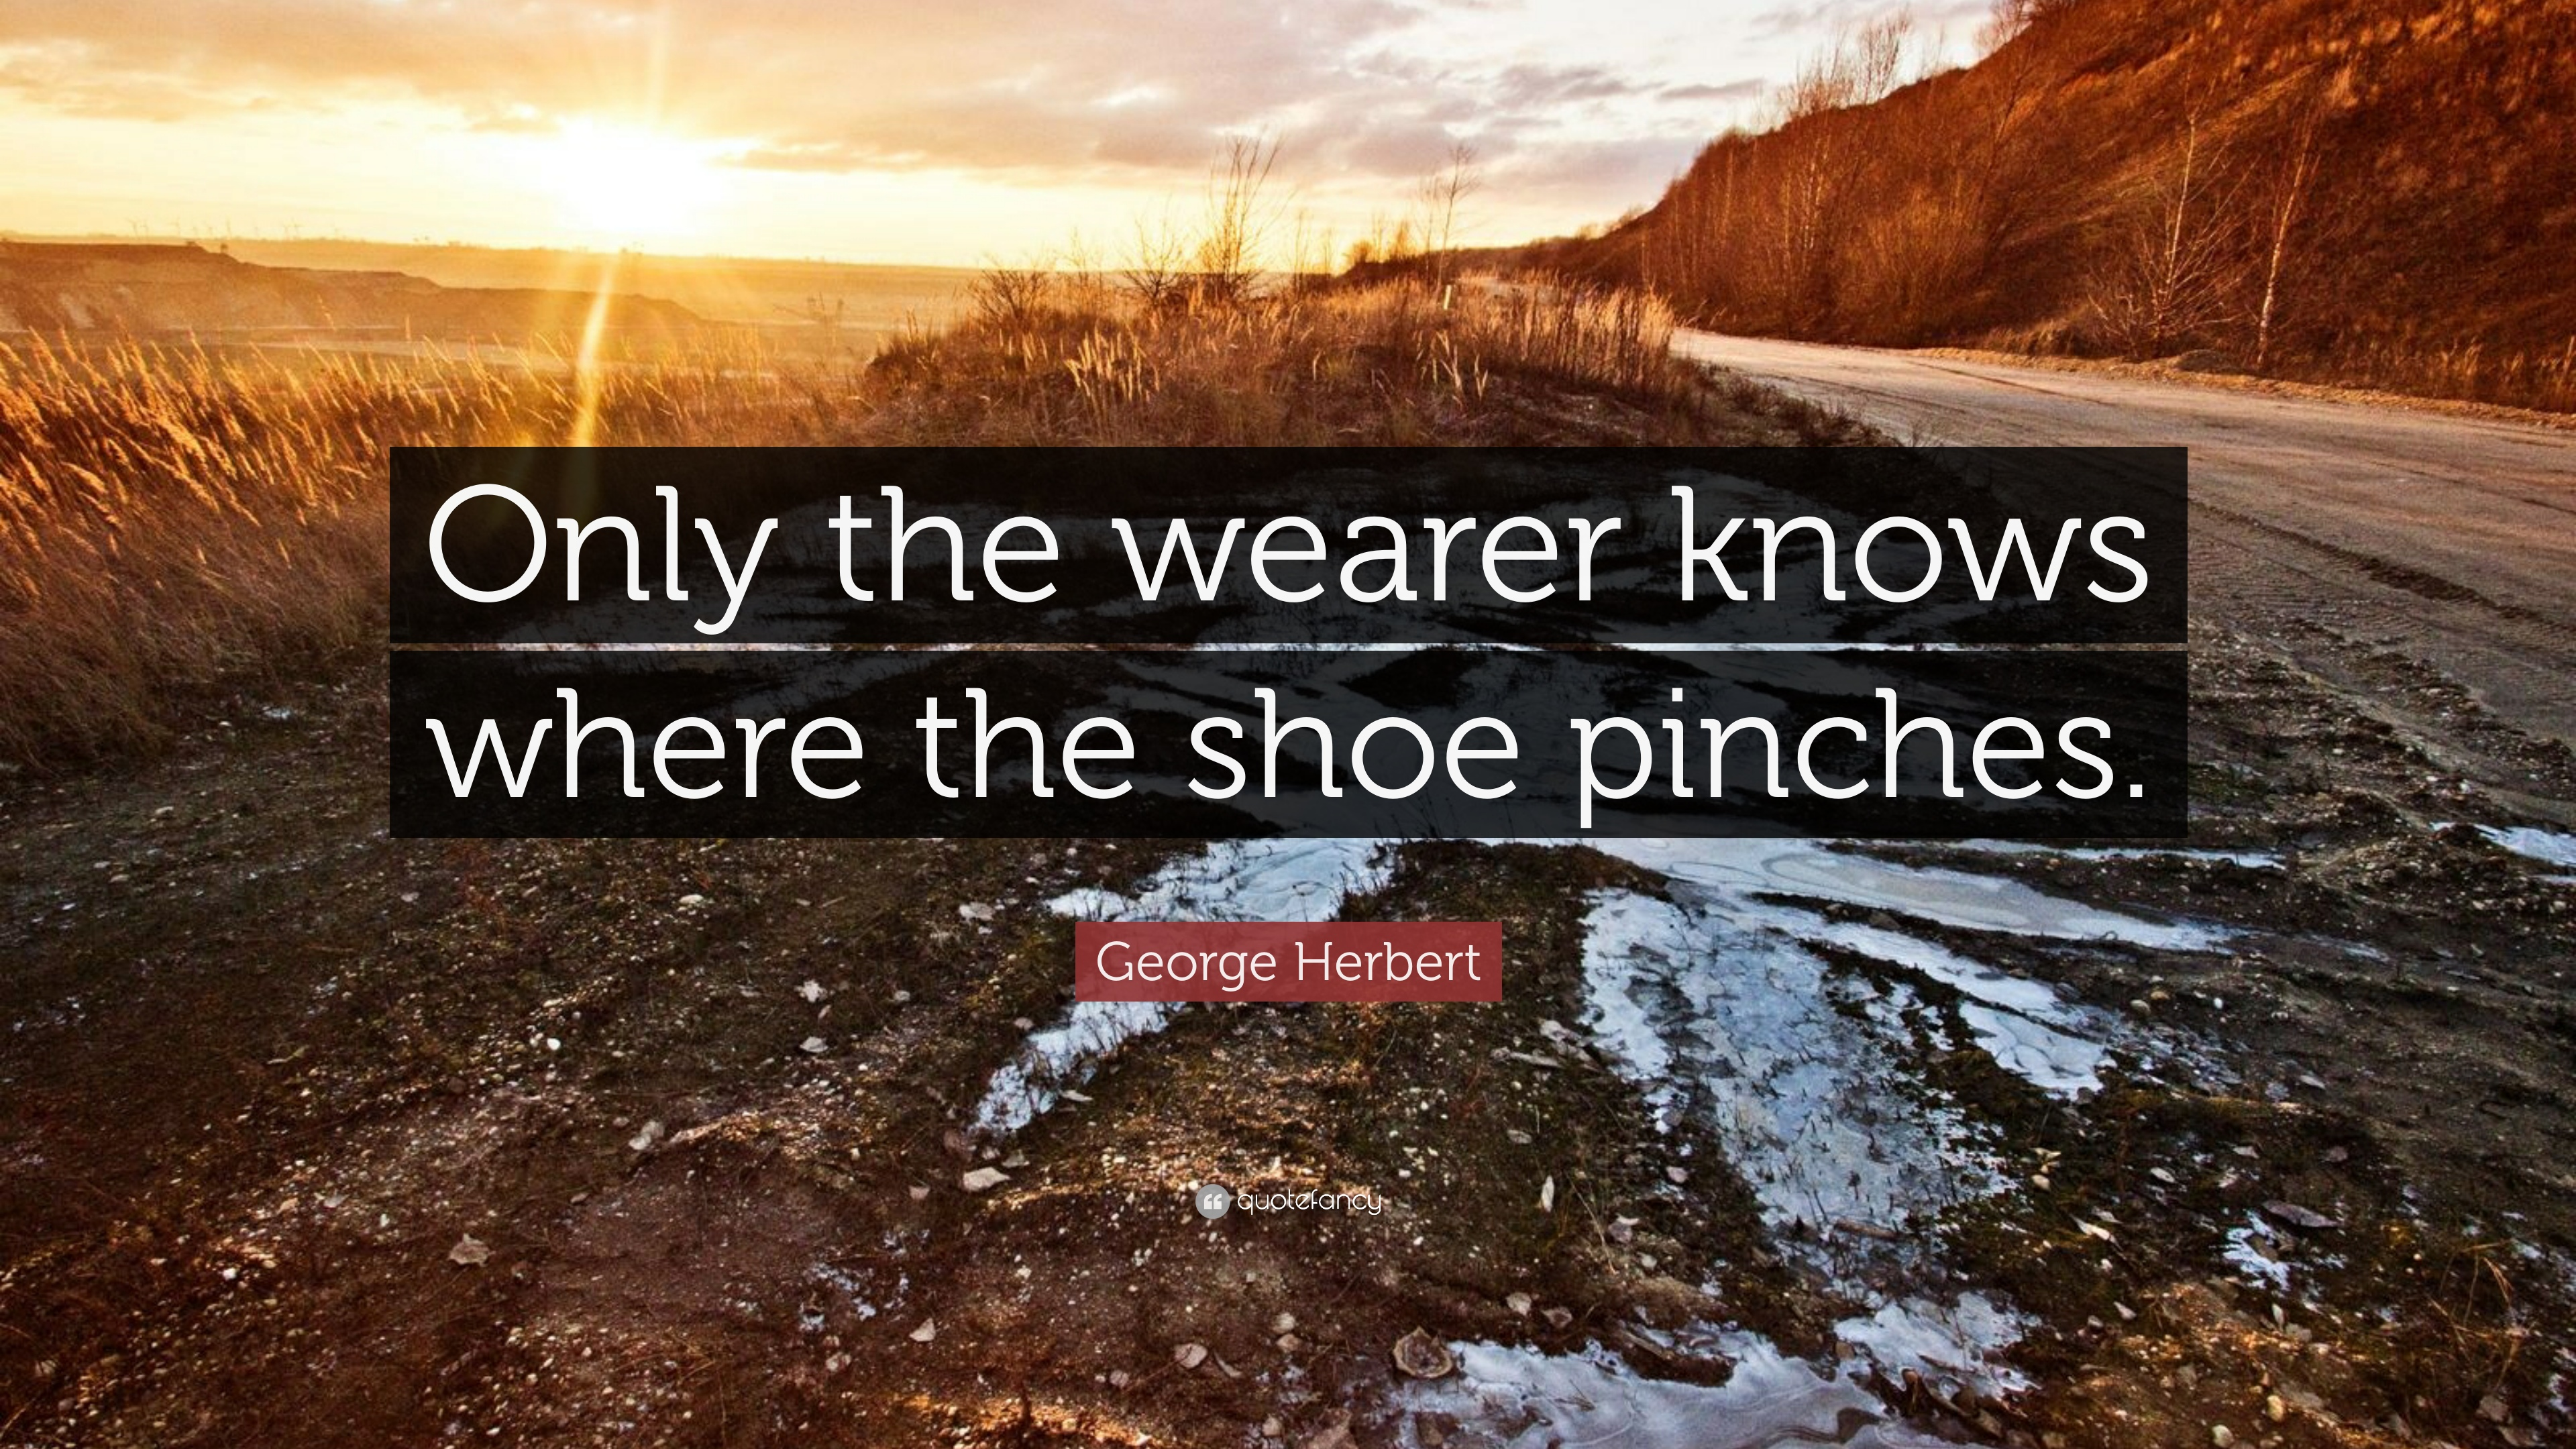 a wearer knows where the shoe pinches